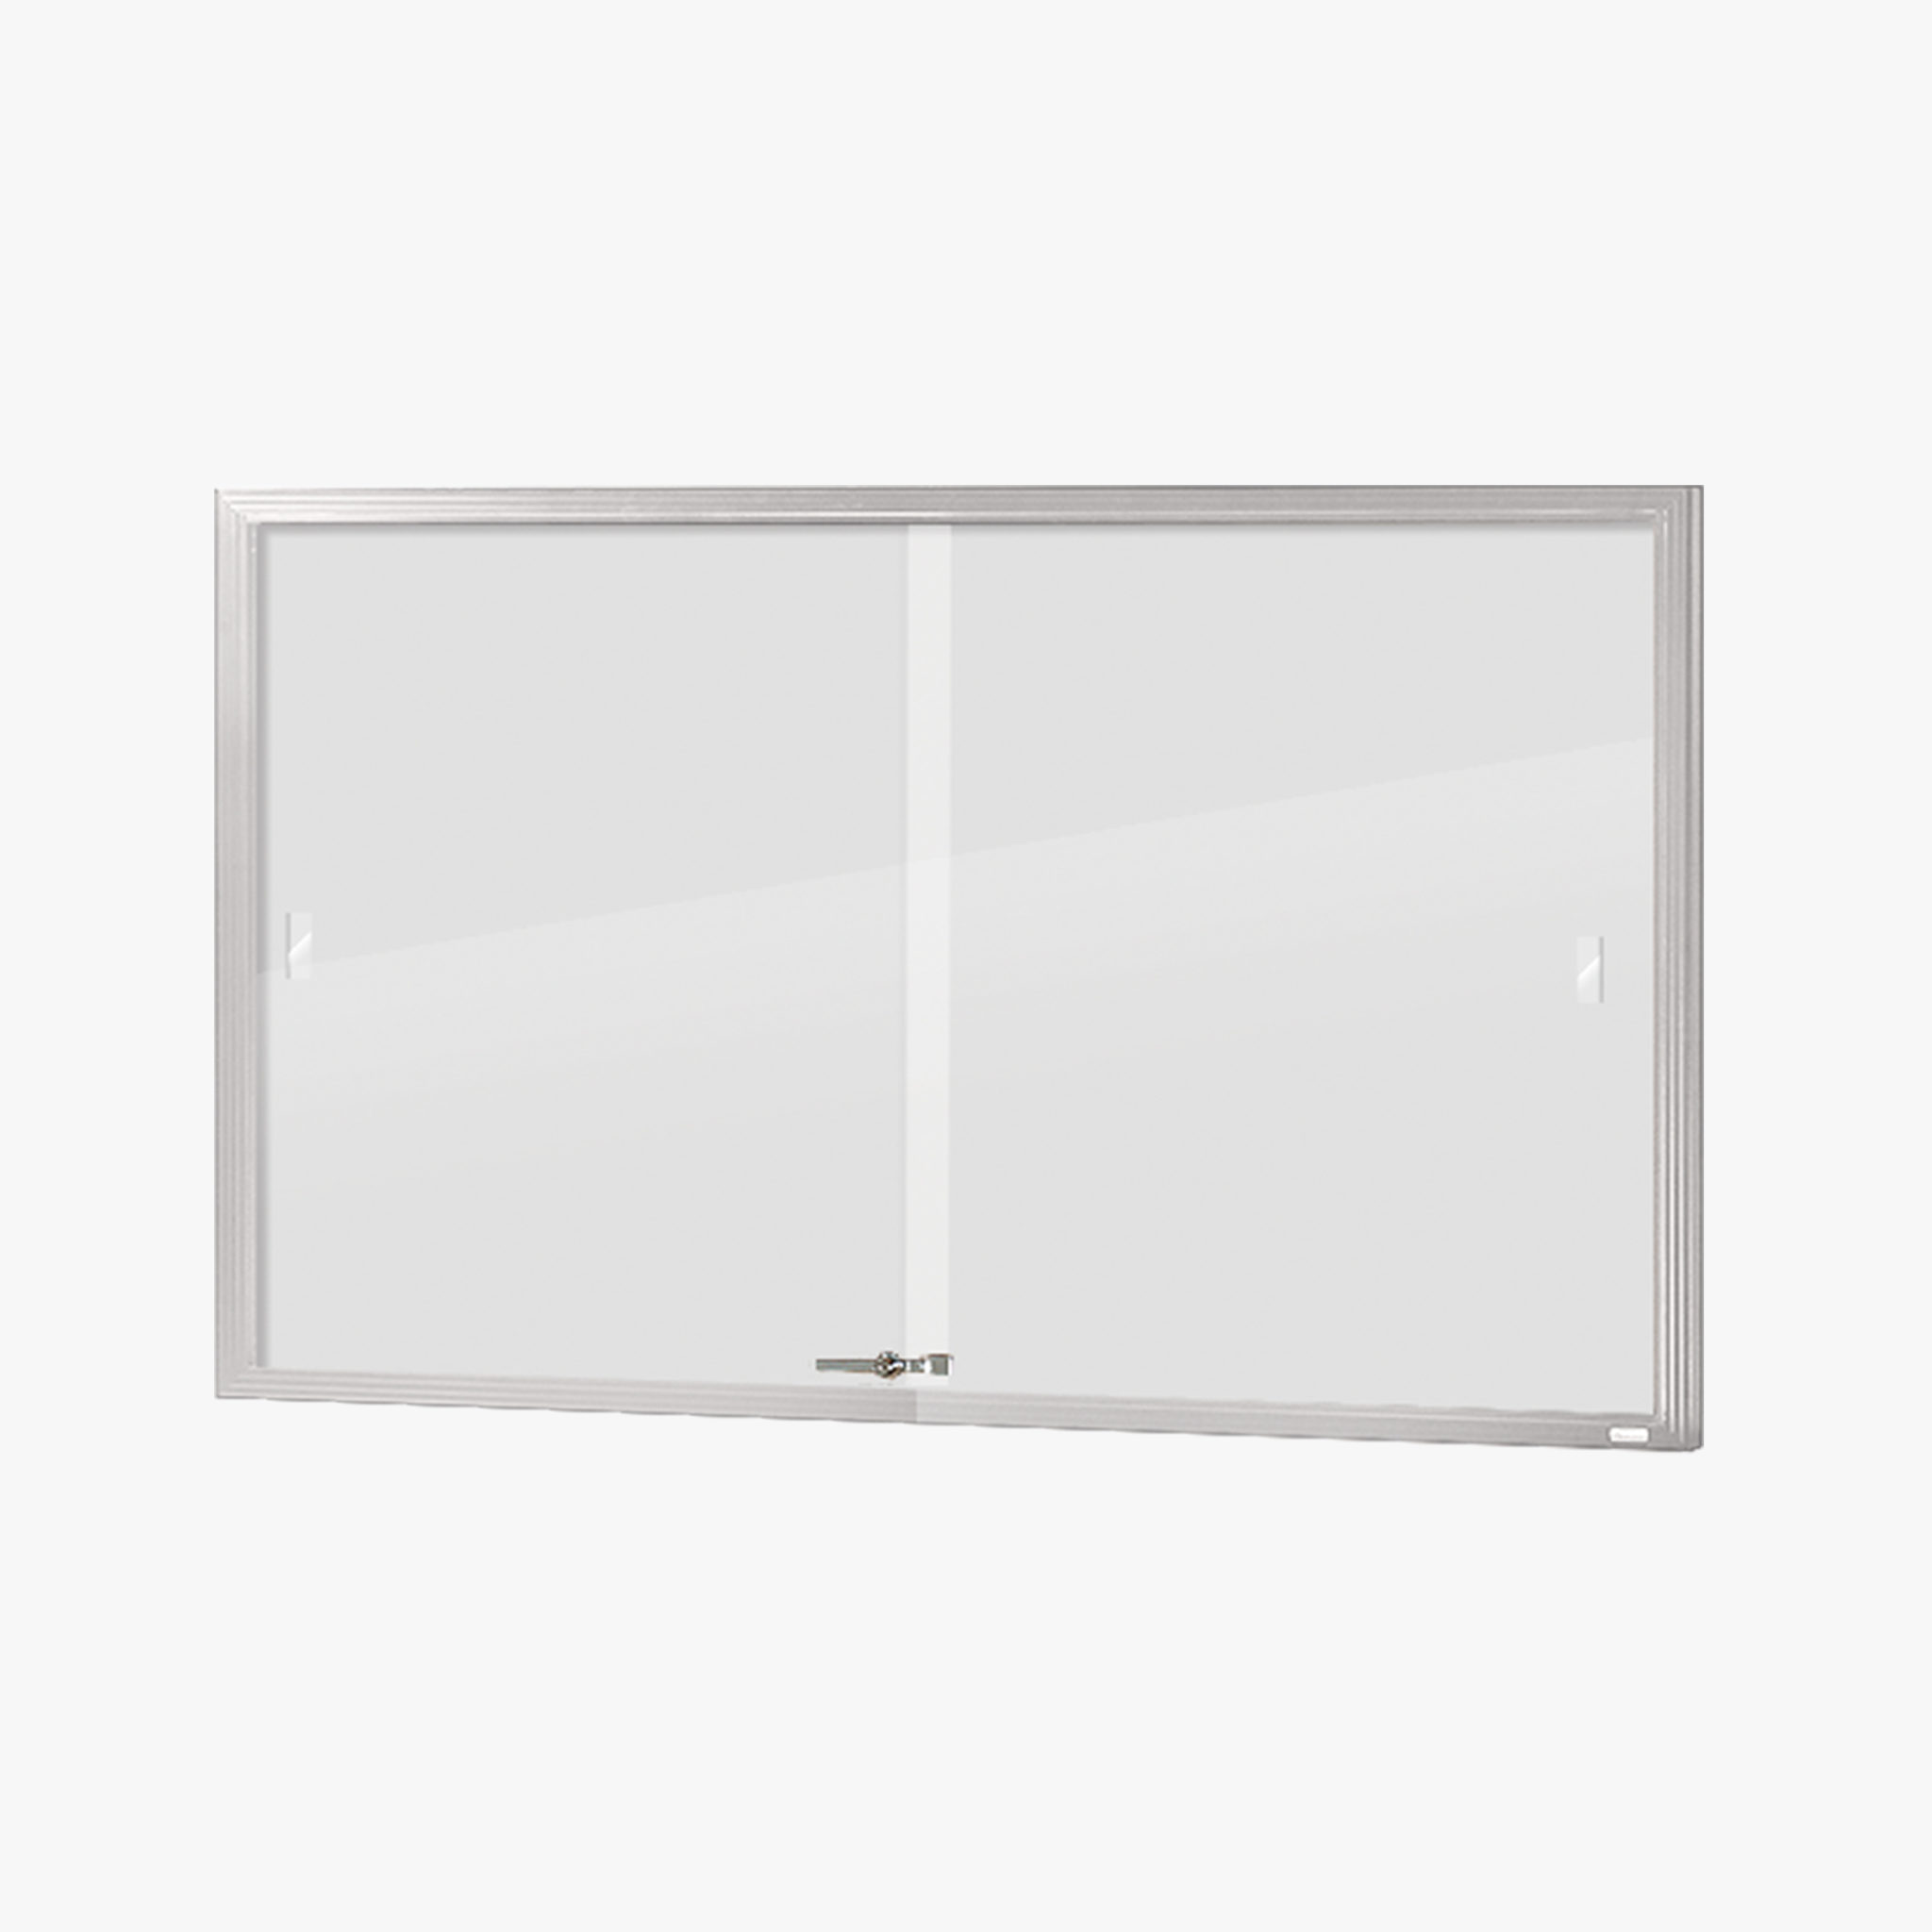 VisiGuard Sliding 2-door Poster Display Board